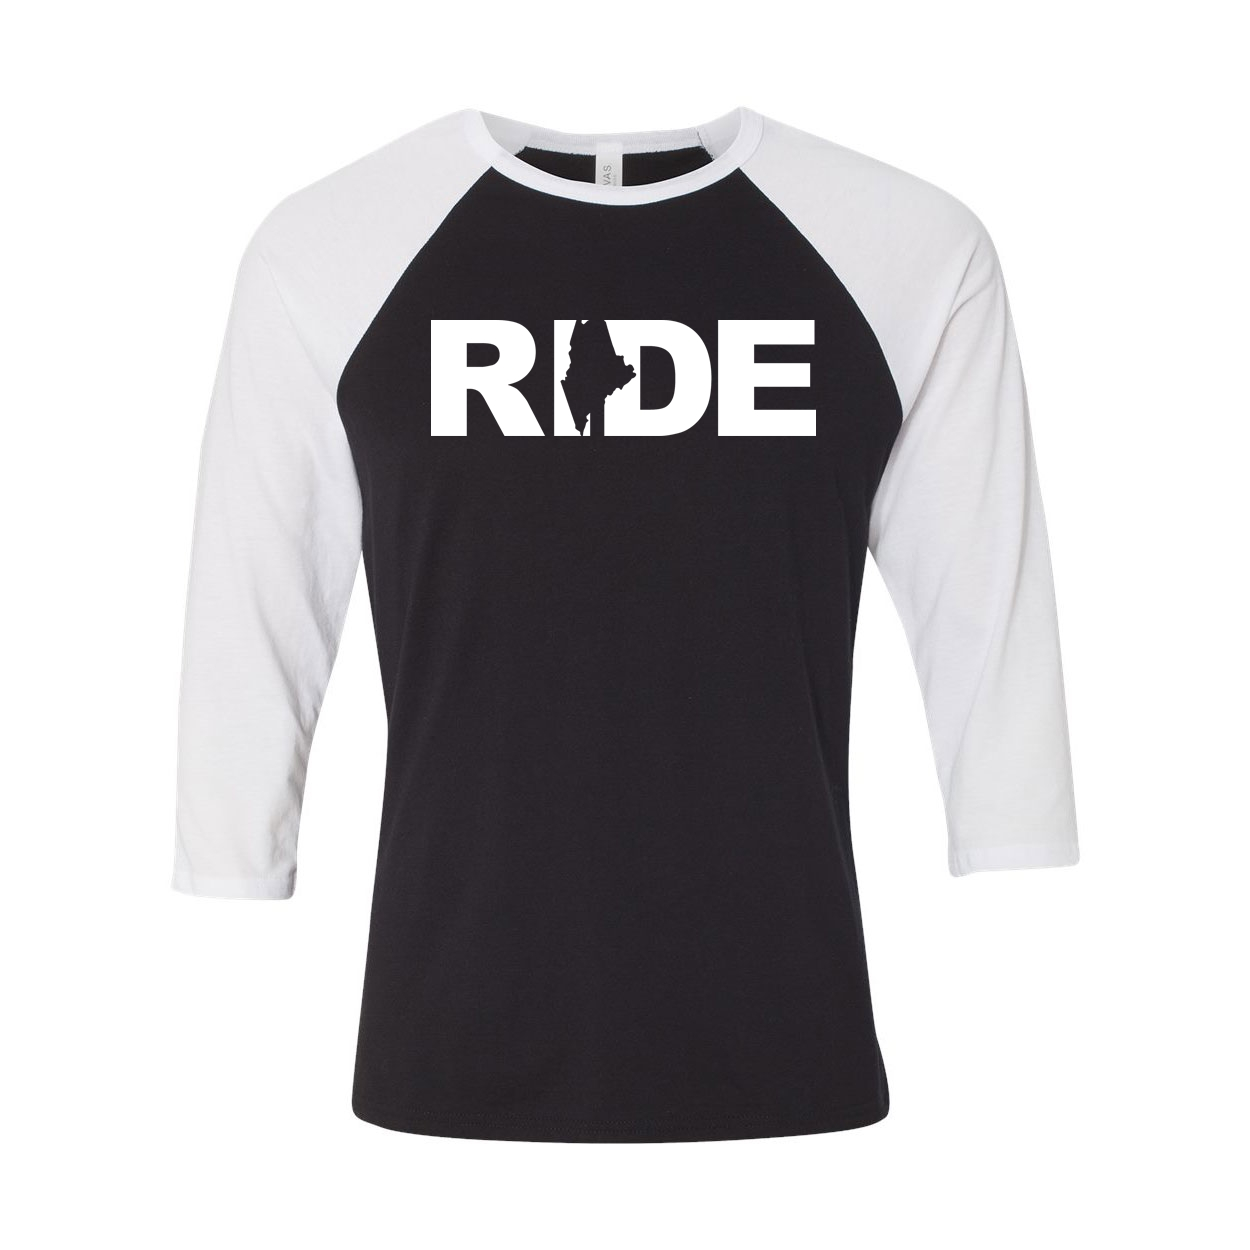 Ride Maine Classic Raglan Shirt Black/White (White Logo)